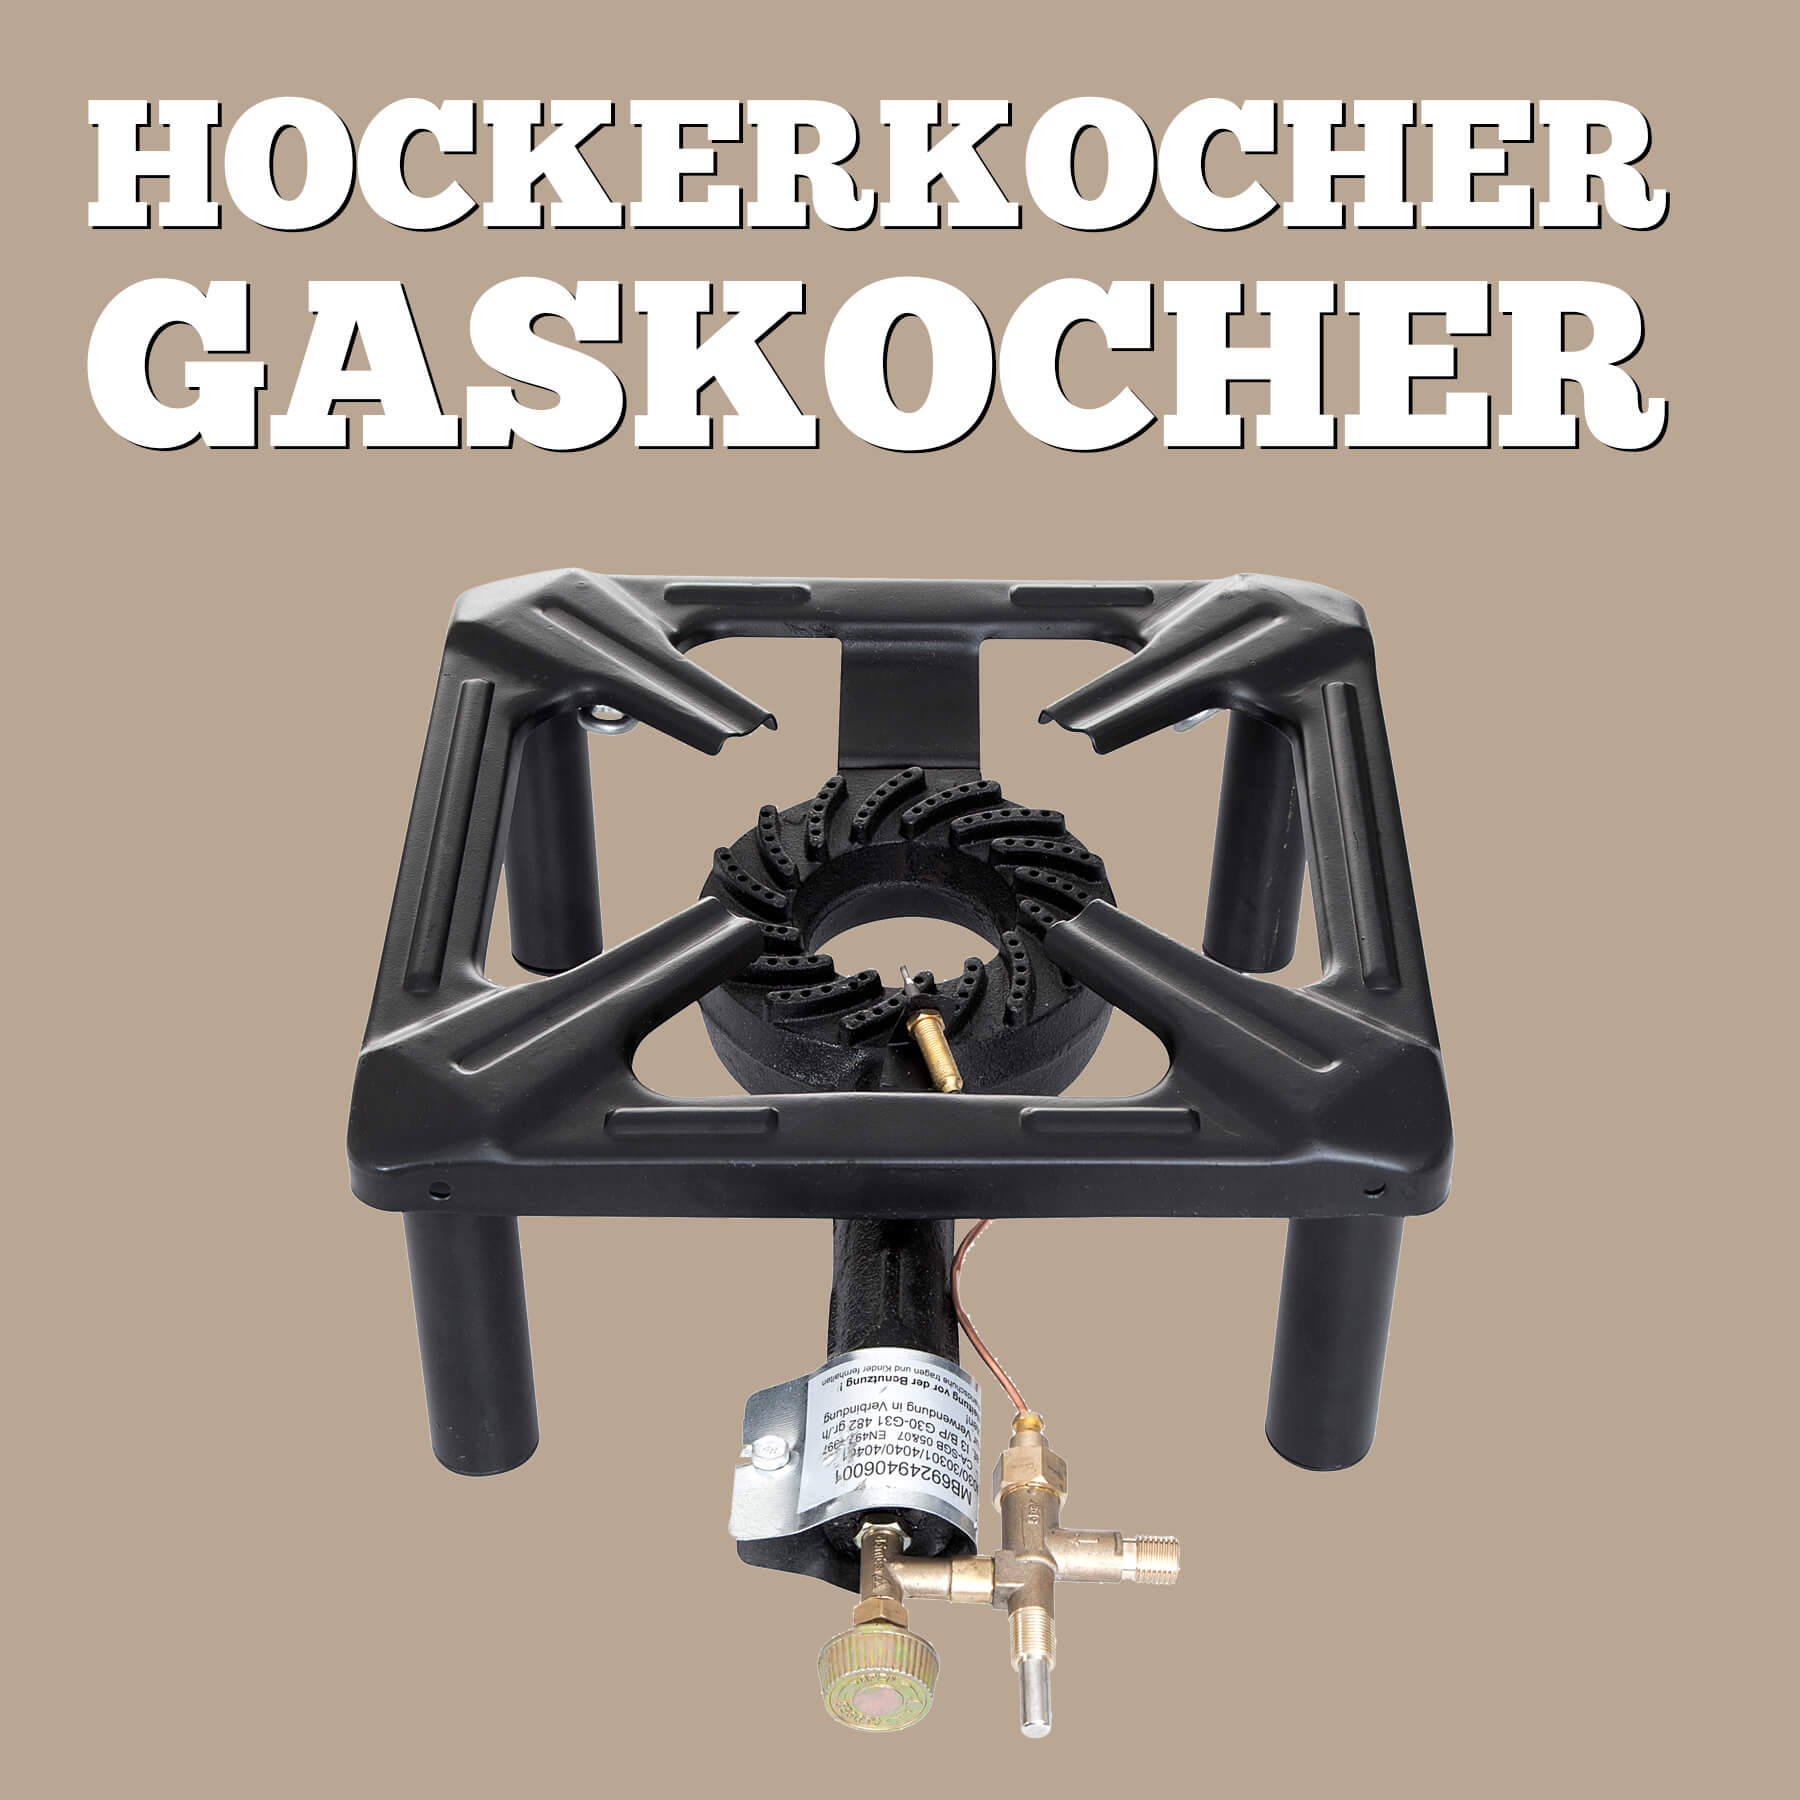 Hockerkocher Gaskocher von ALL'GRILL